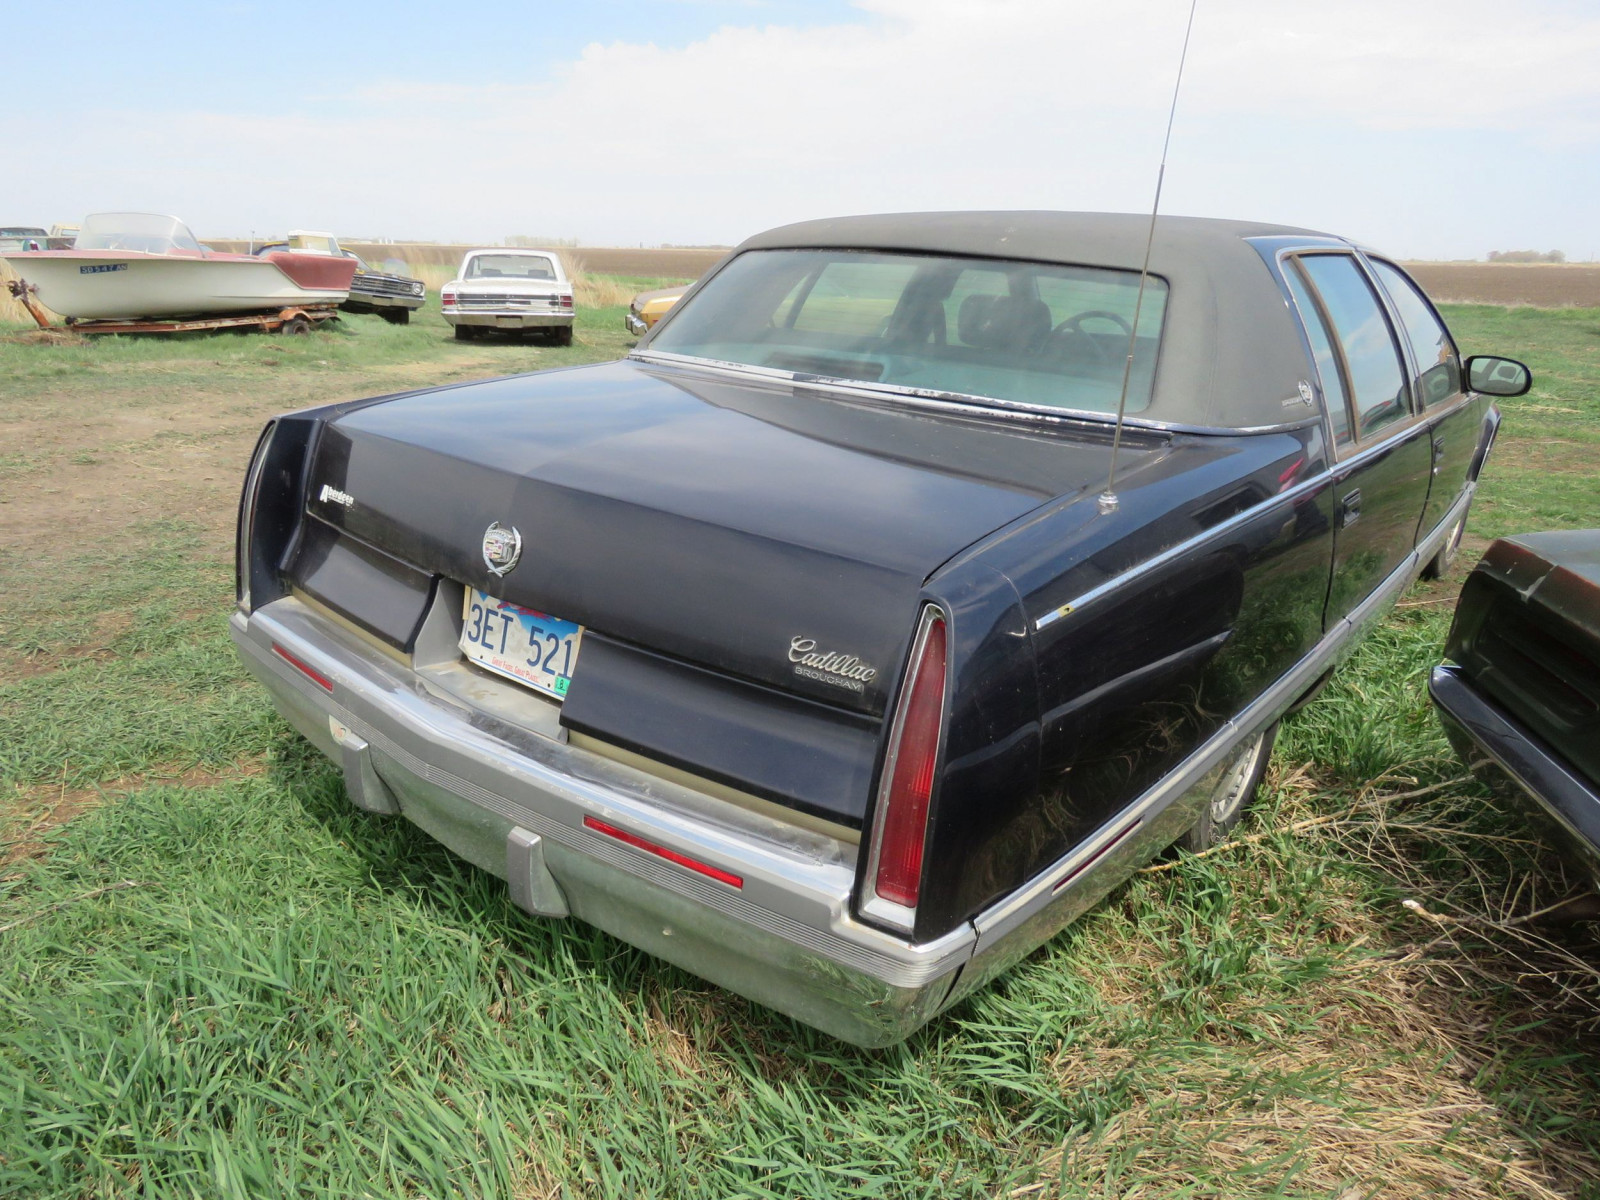 1996 Cadillac Fleetwood Brougham - Image 6